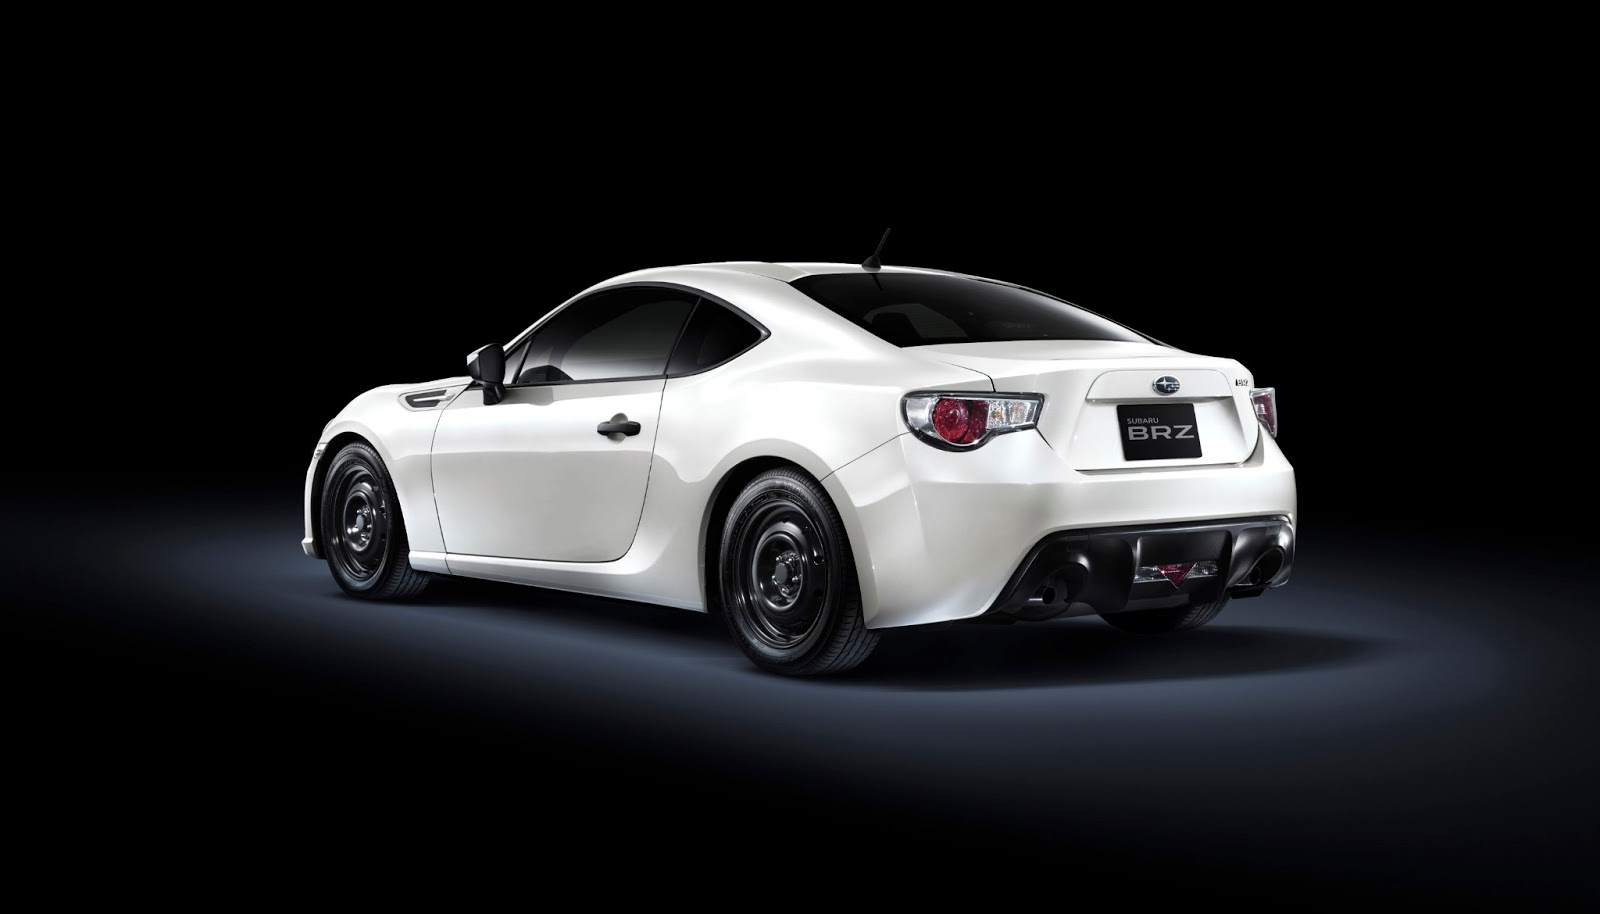 Cars Gto Subaru Brz Ra Racing